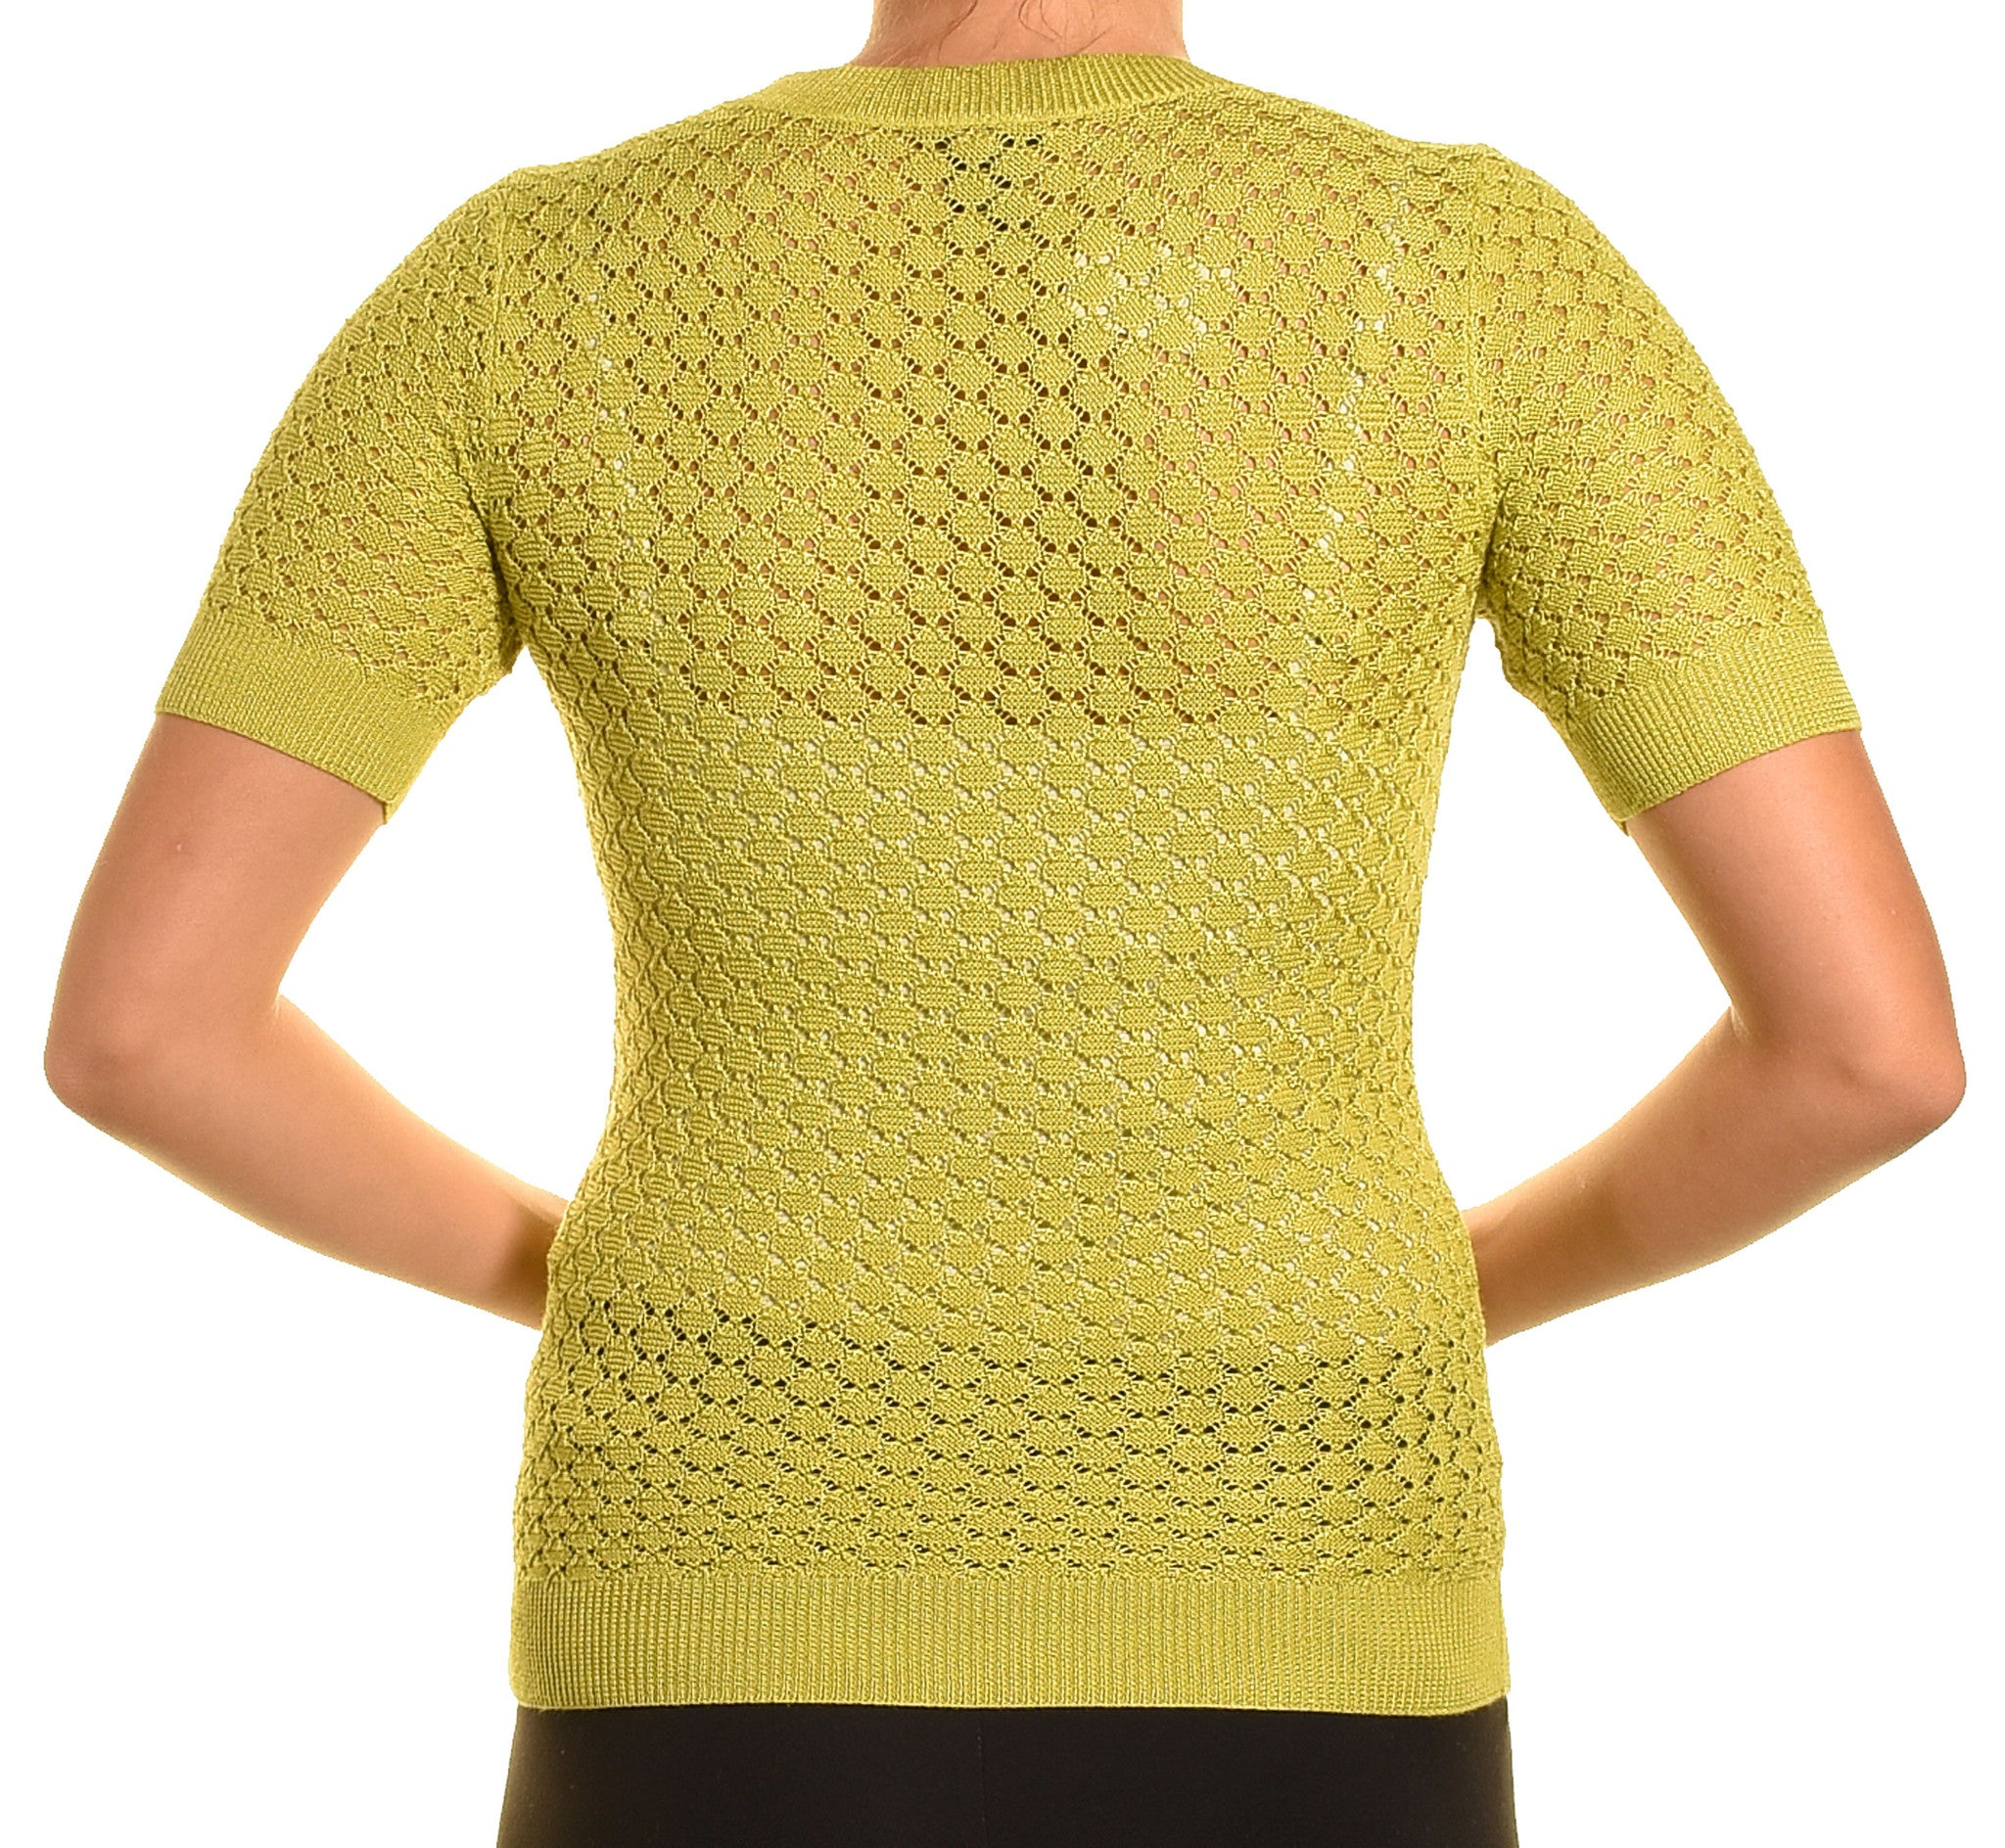 Ann Taylor Sheer Knit Layering Shirt (Lime Green),Shirts,Ann Taylor - Discount Divas